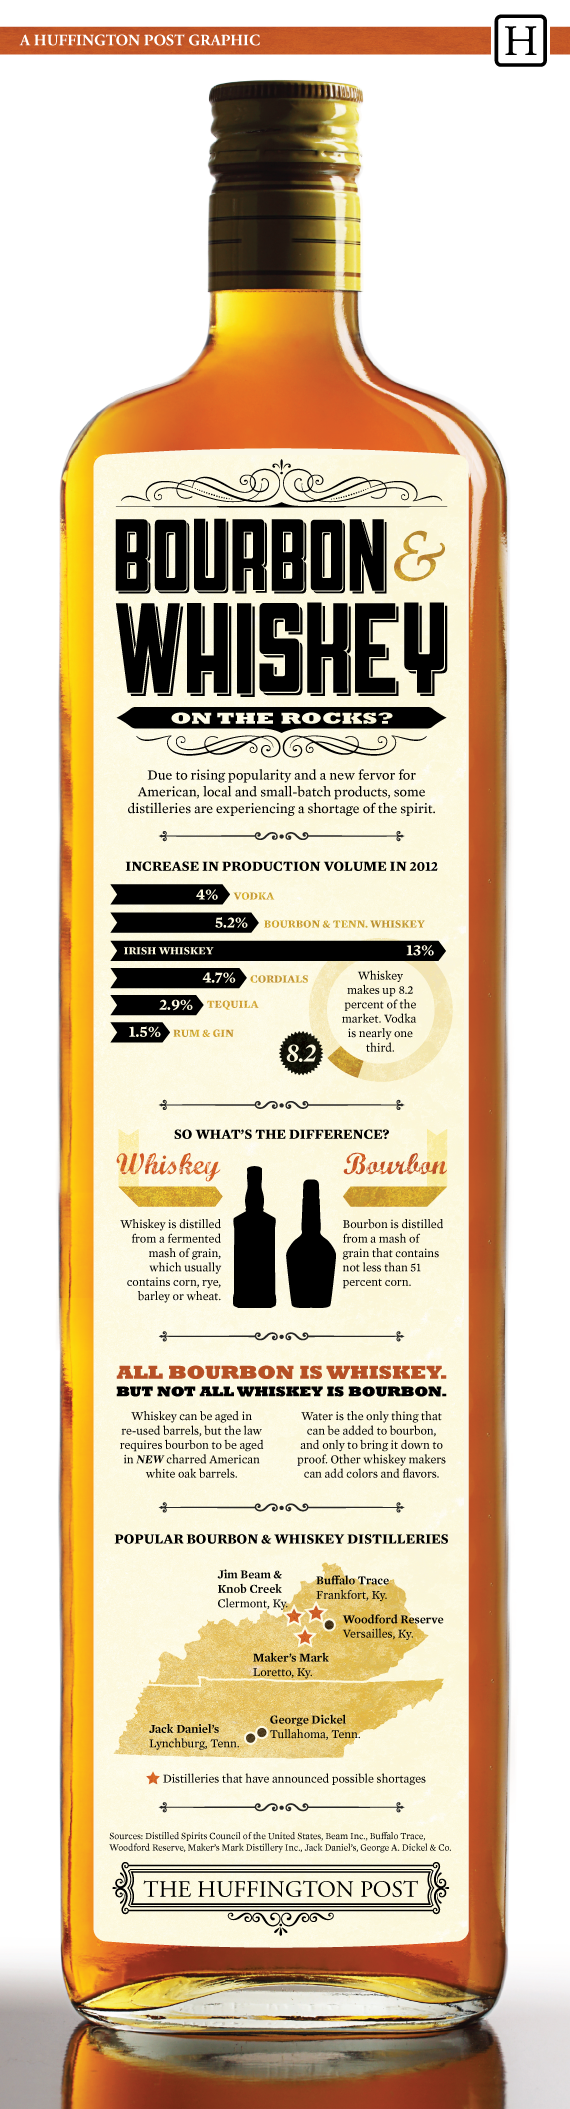 Whiskey-Facts-You-Should-Know-INFOGRAPHIC